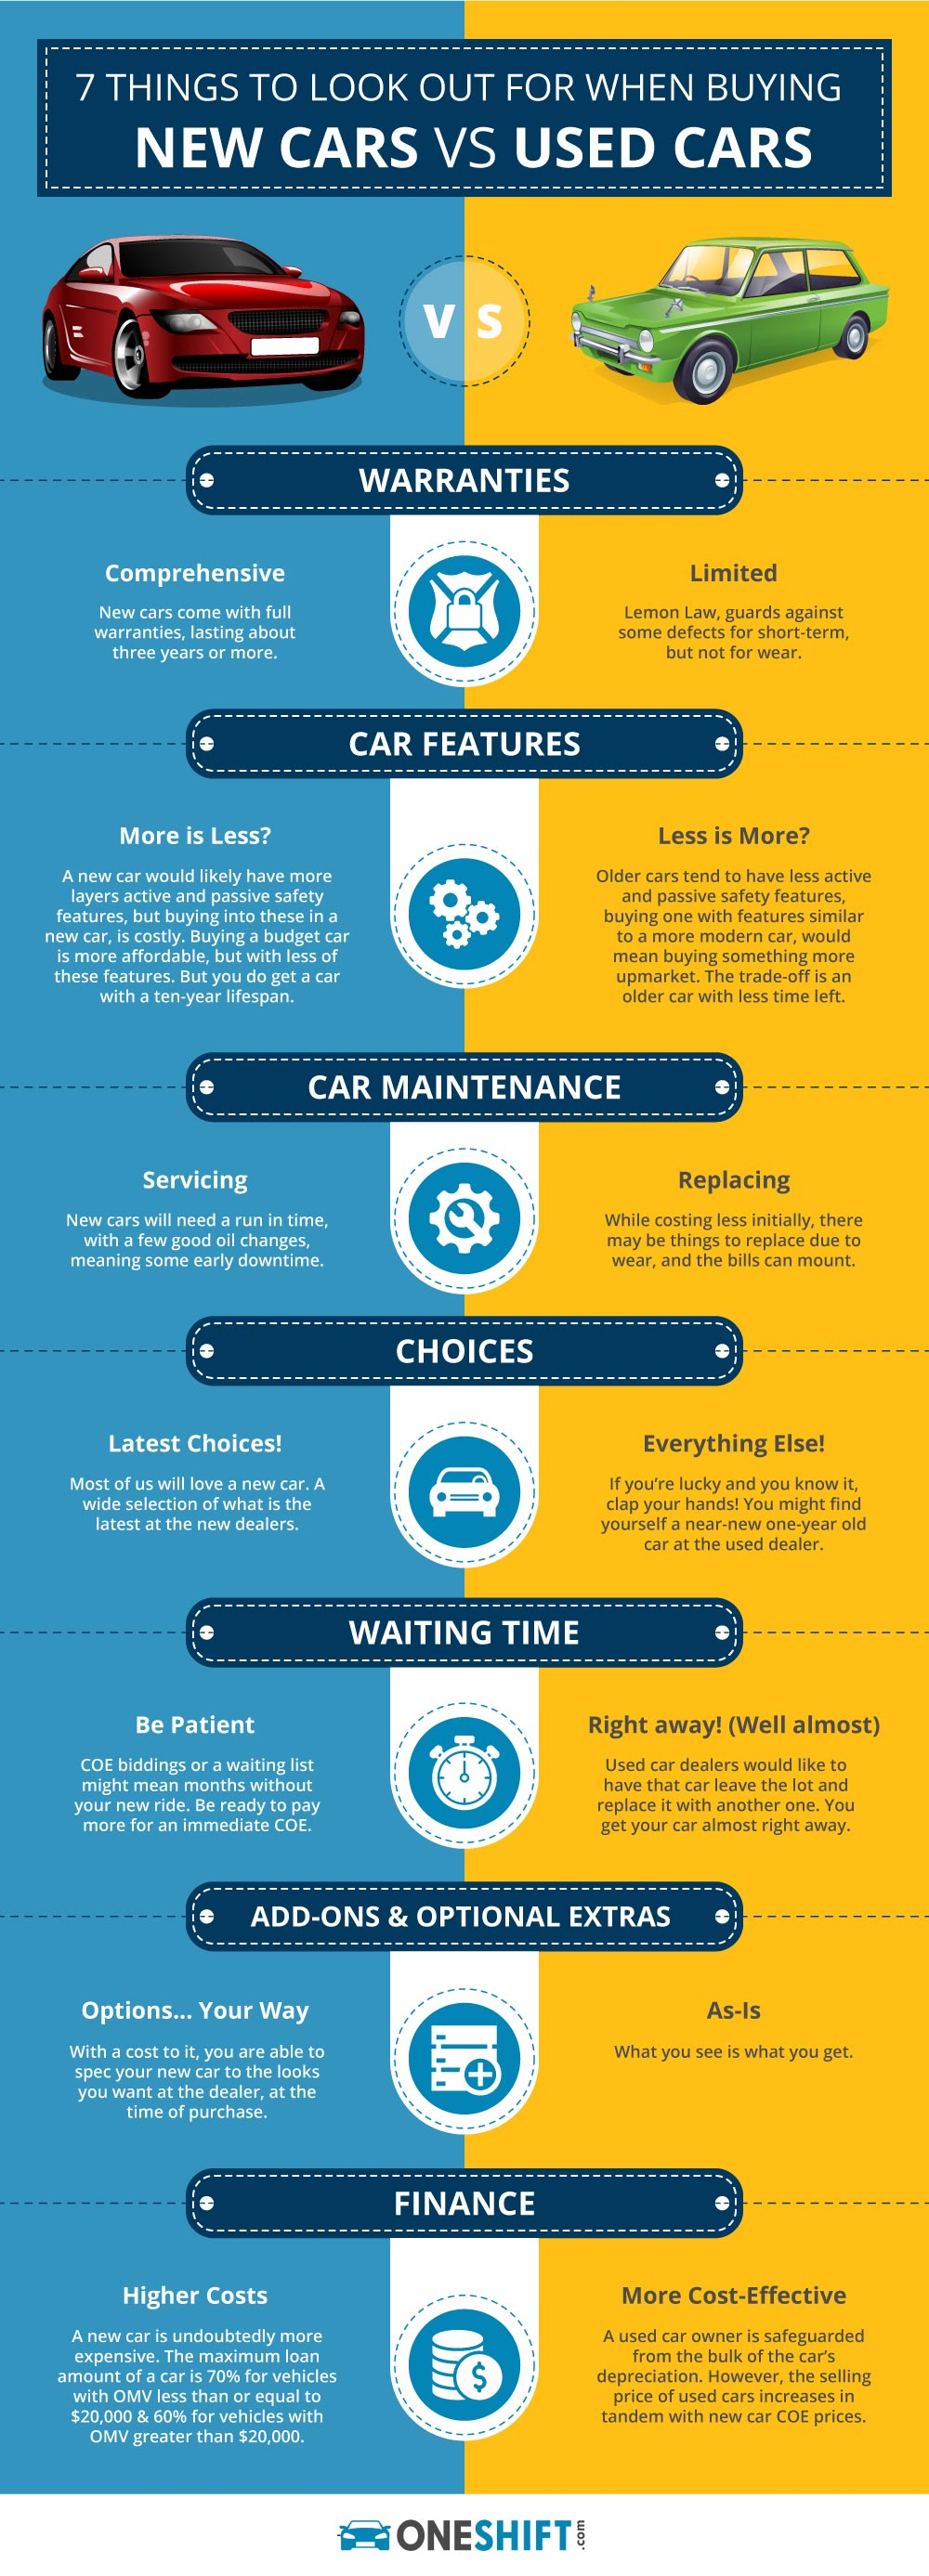 7 Things to Look Out For When Buying a New or Used Car